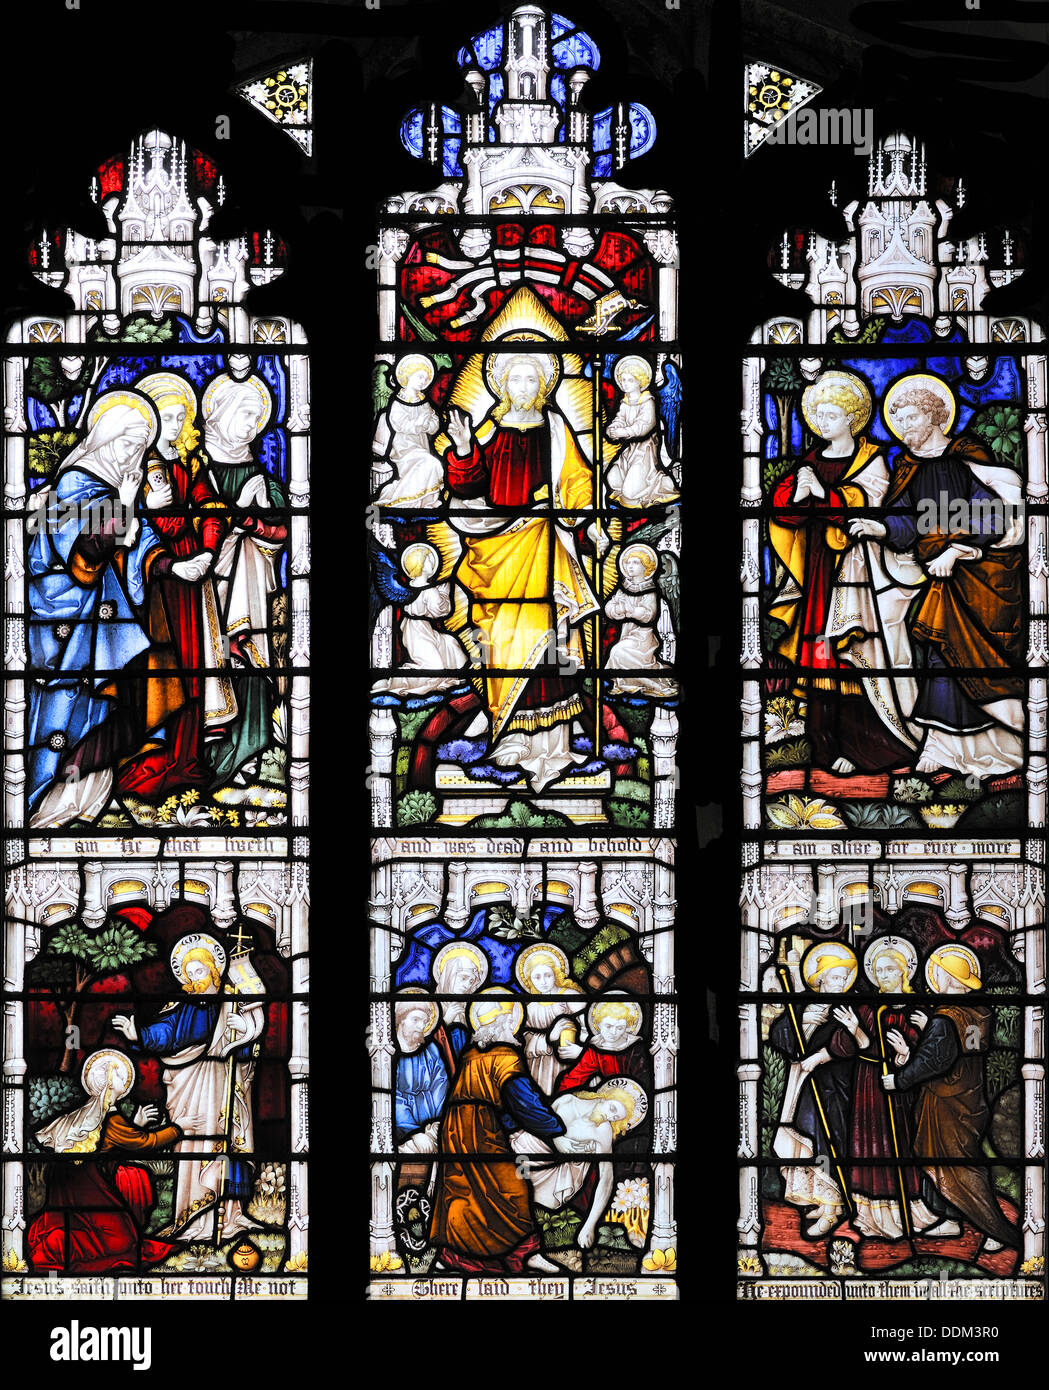 Scenes from 'The Resurrection', by Clayton and Bell, St Peter's Church, Stainforth, Yorkshire, England - Stock Image